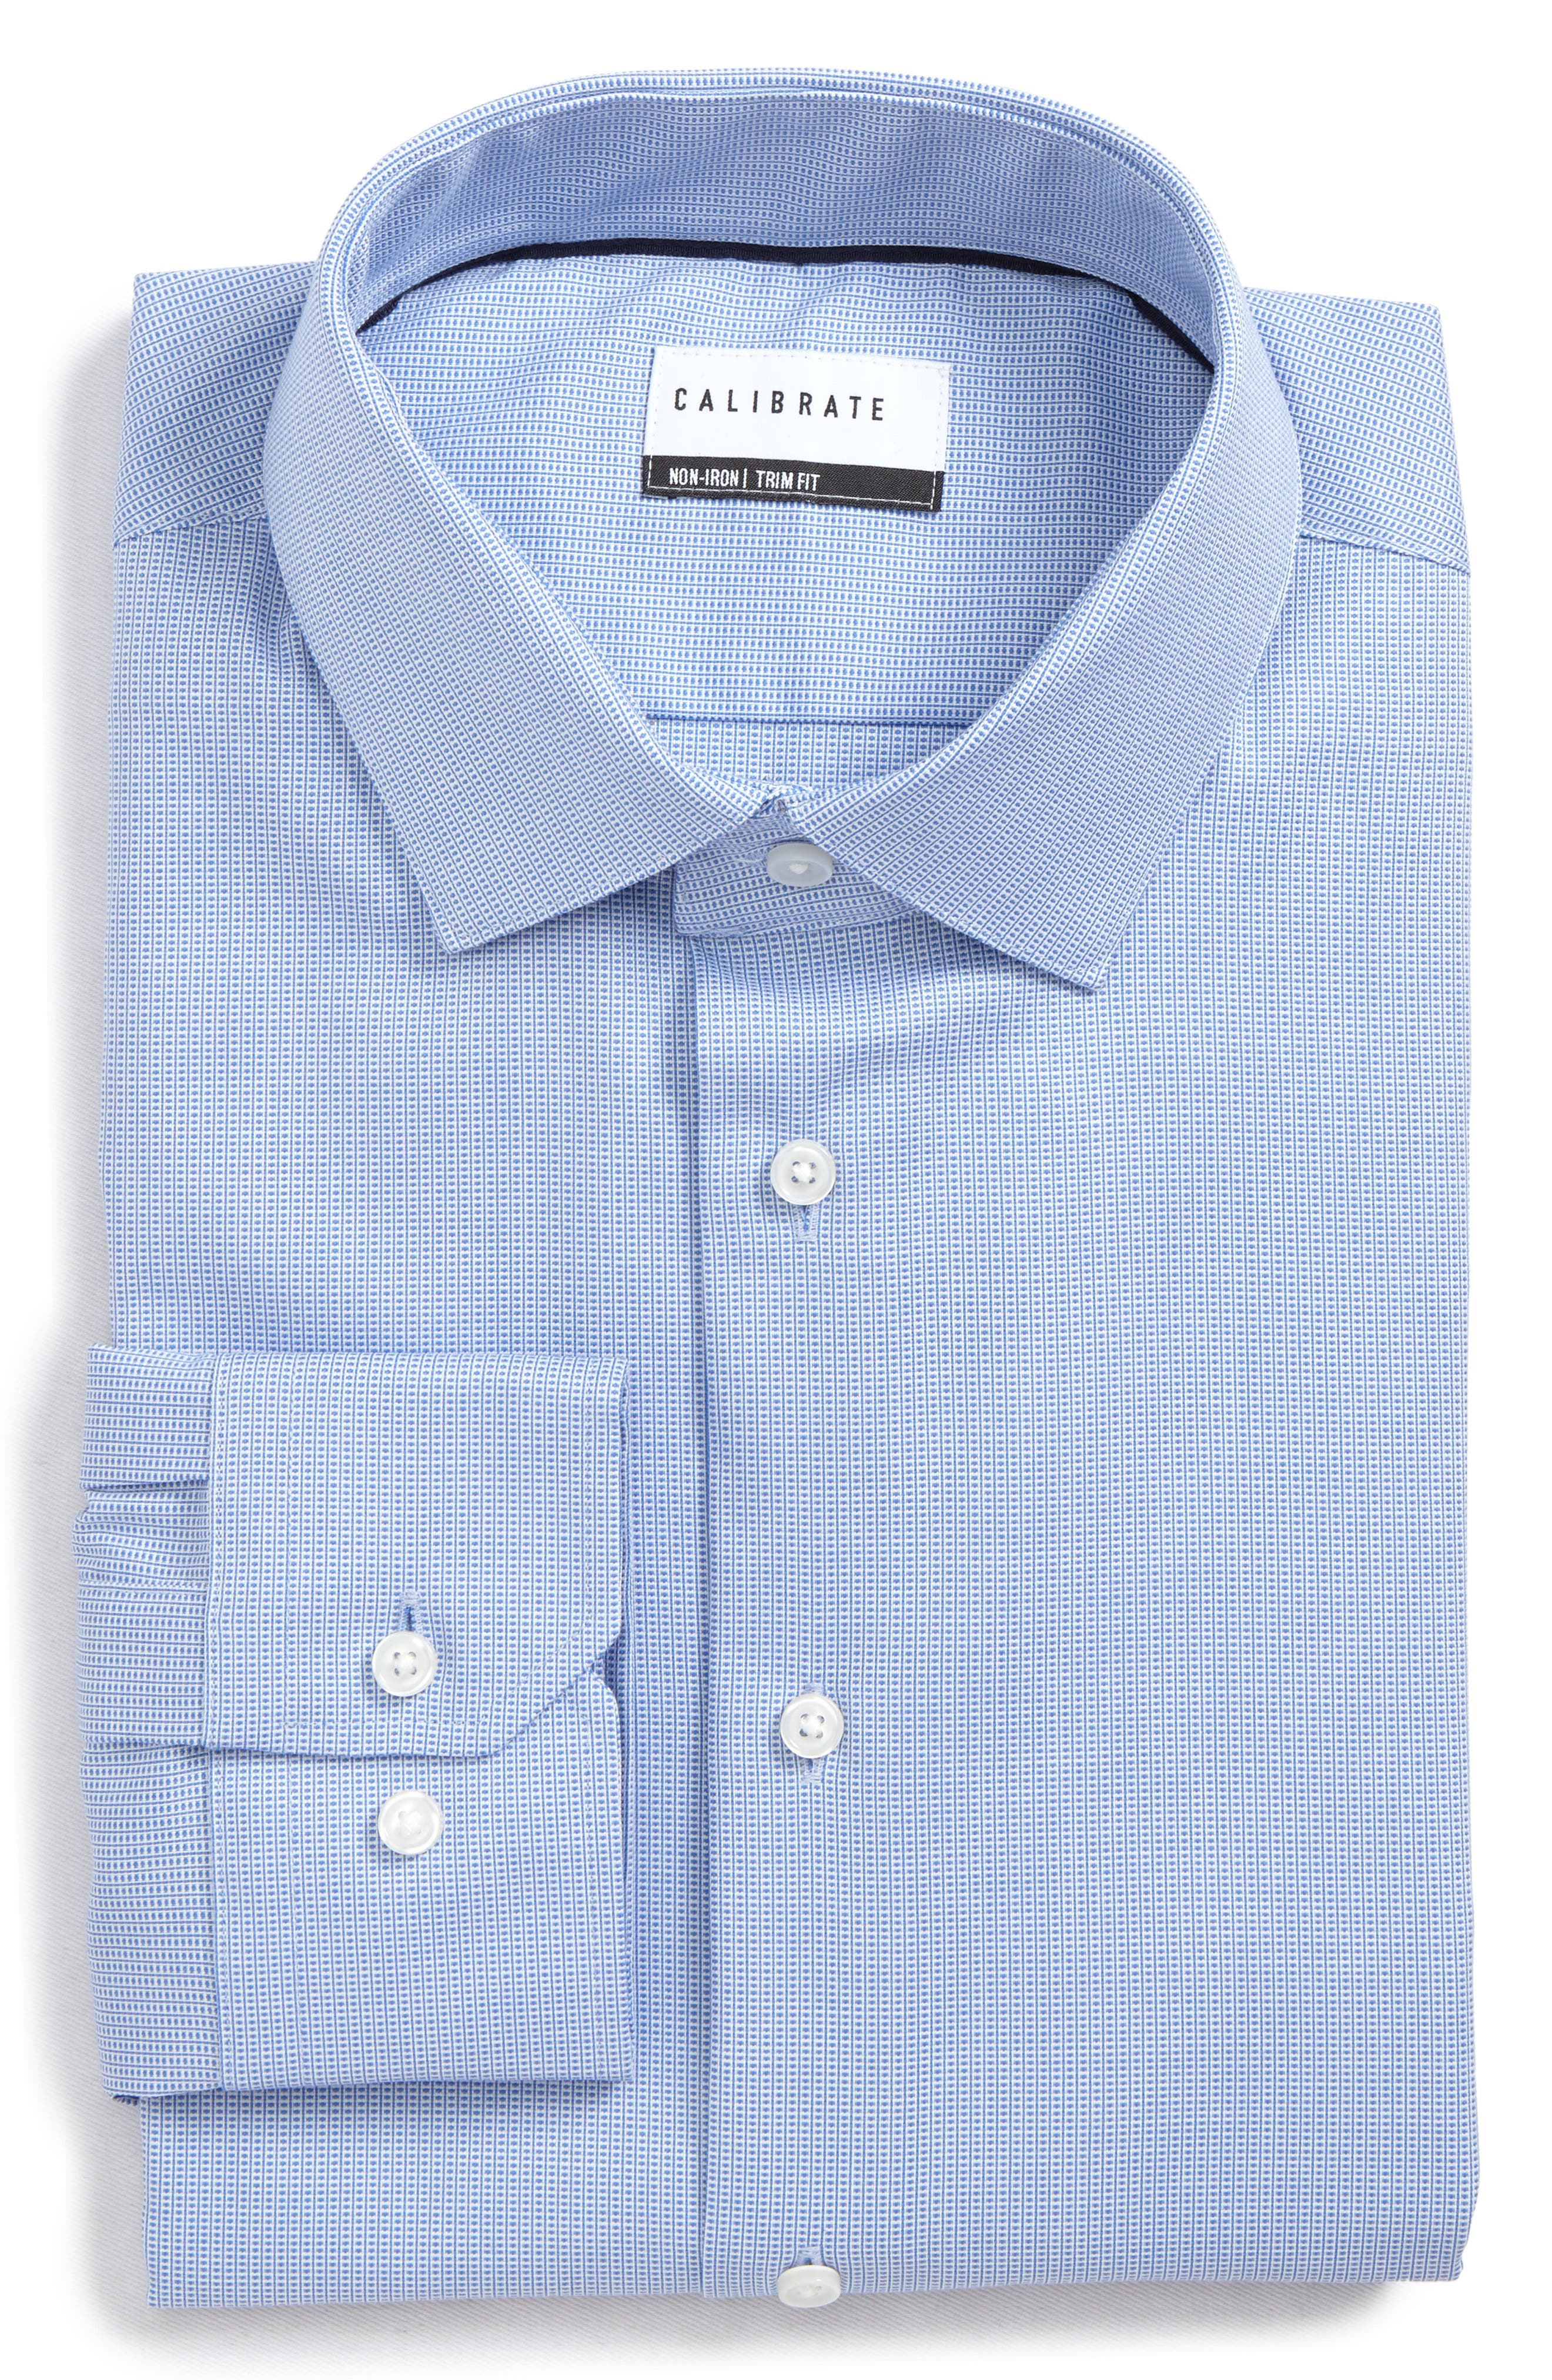 Alternate Image 1 Selected - Calibrate Trim Fit Non-Iron Stretch Dress Shirt